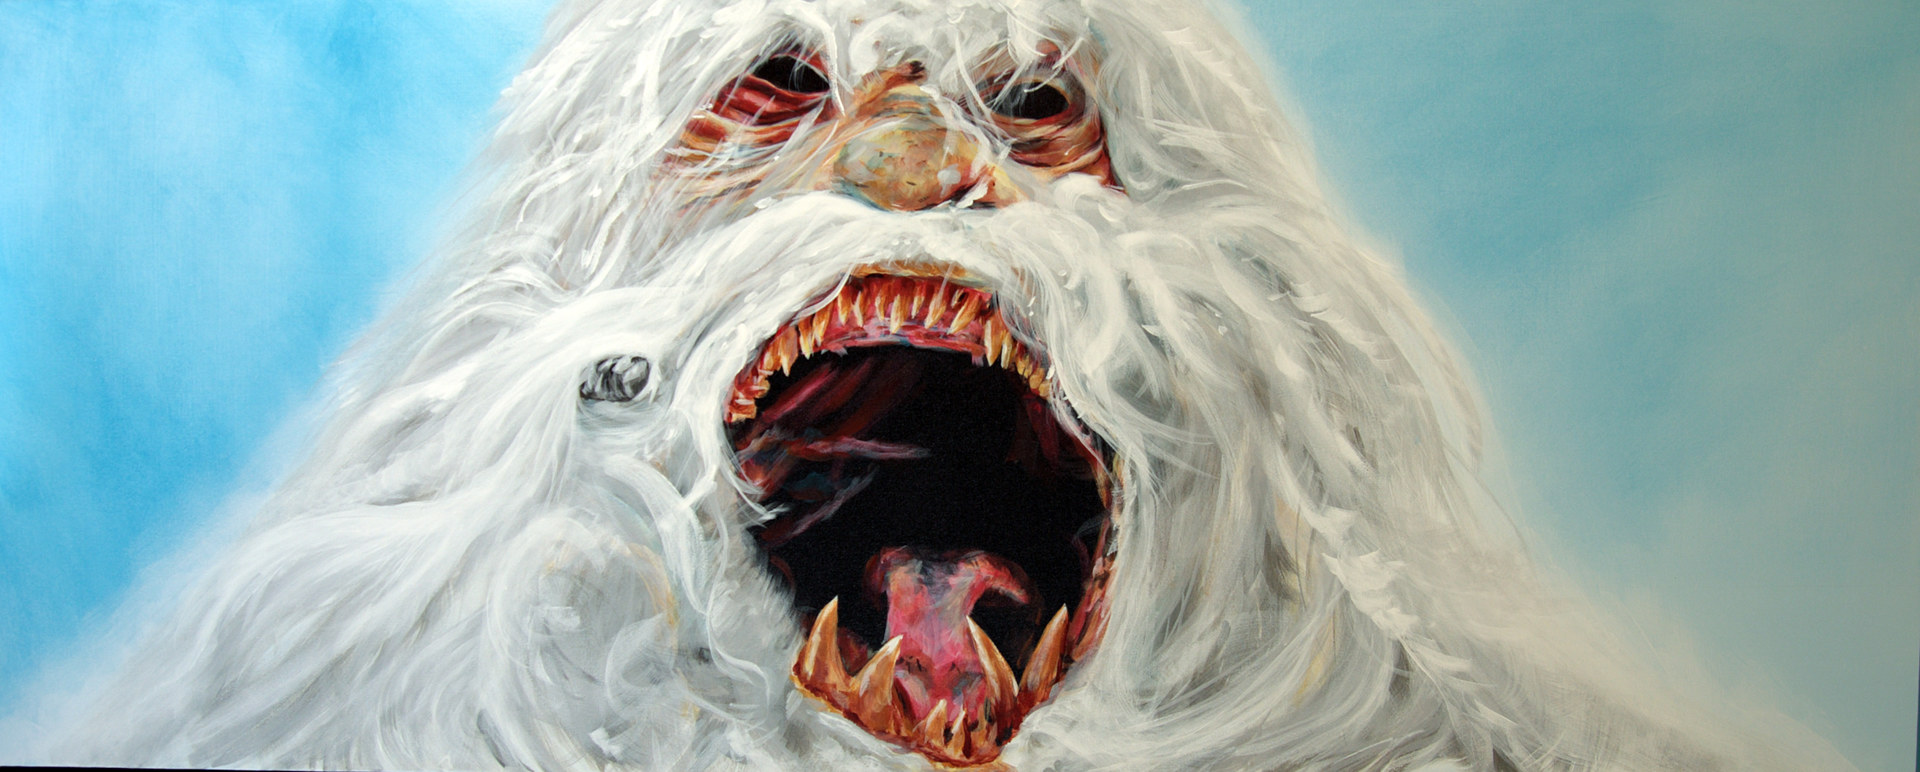 Wampa_post by Joseph Sullivan